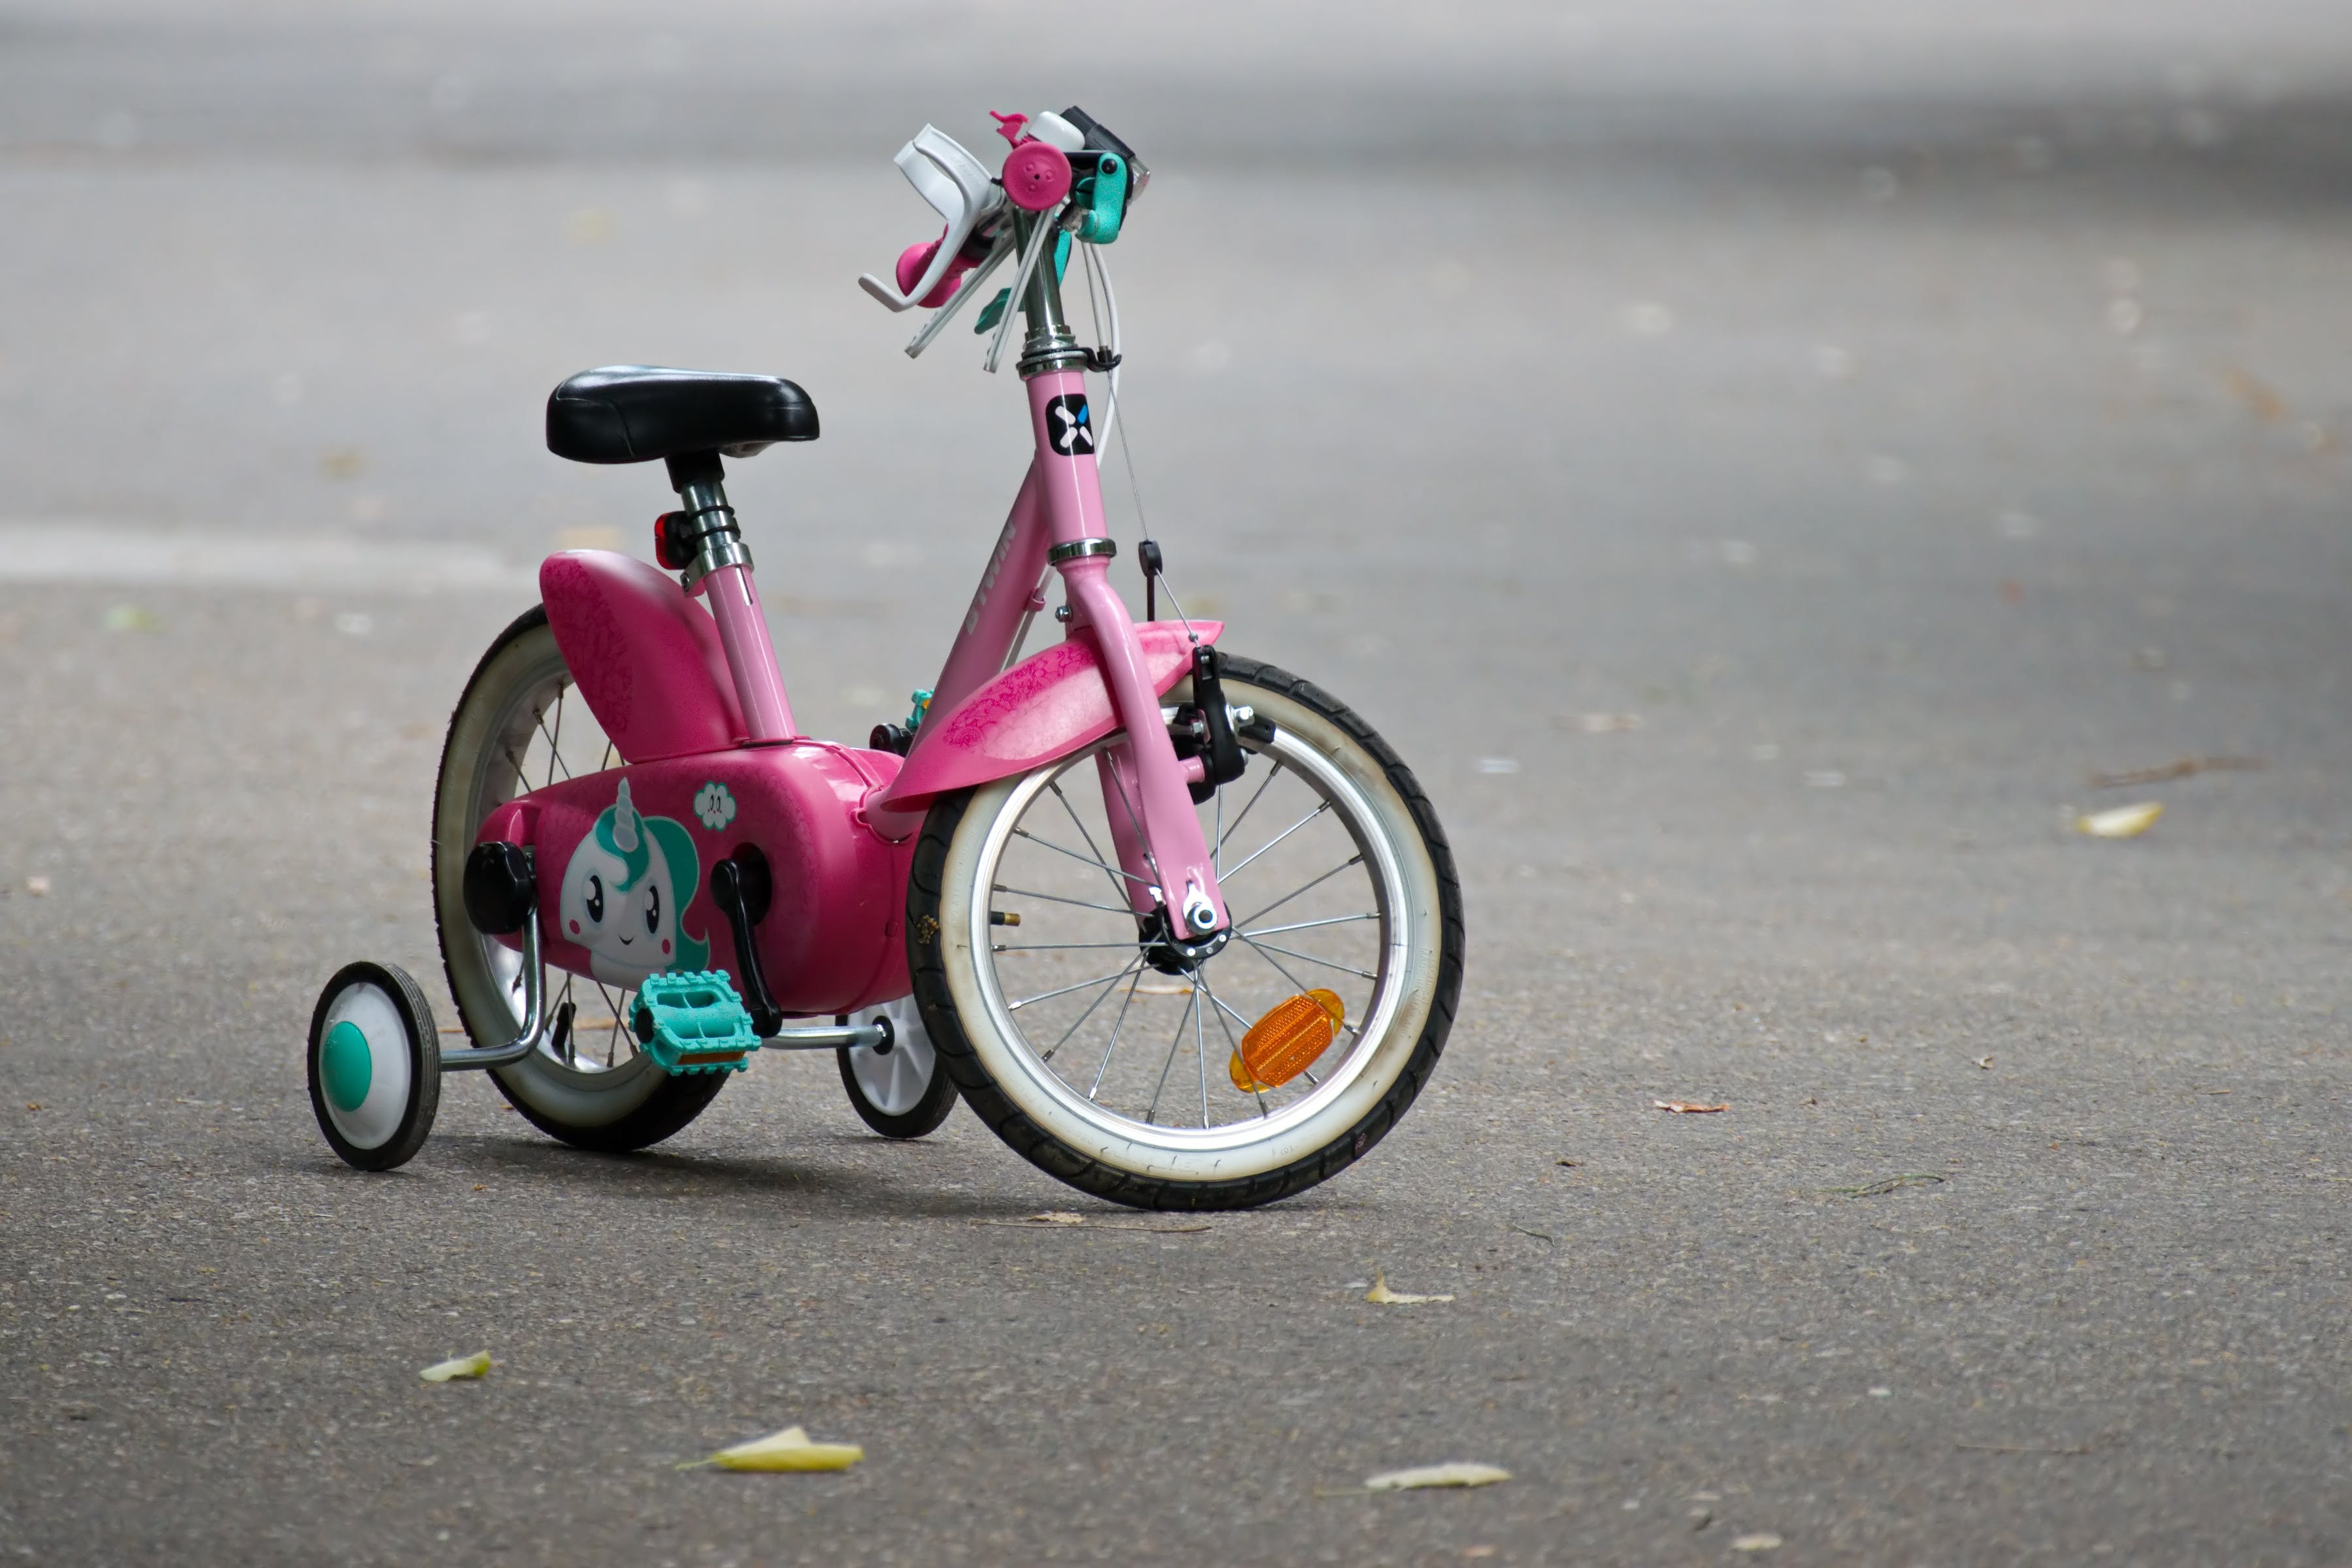 Pink Bike With Training Wheels on Gray Pave Road